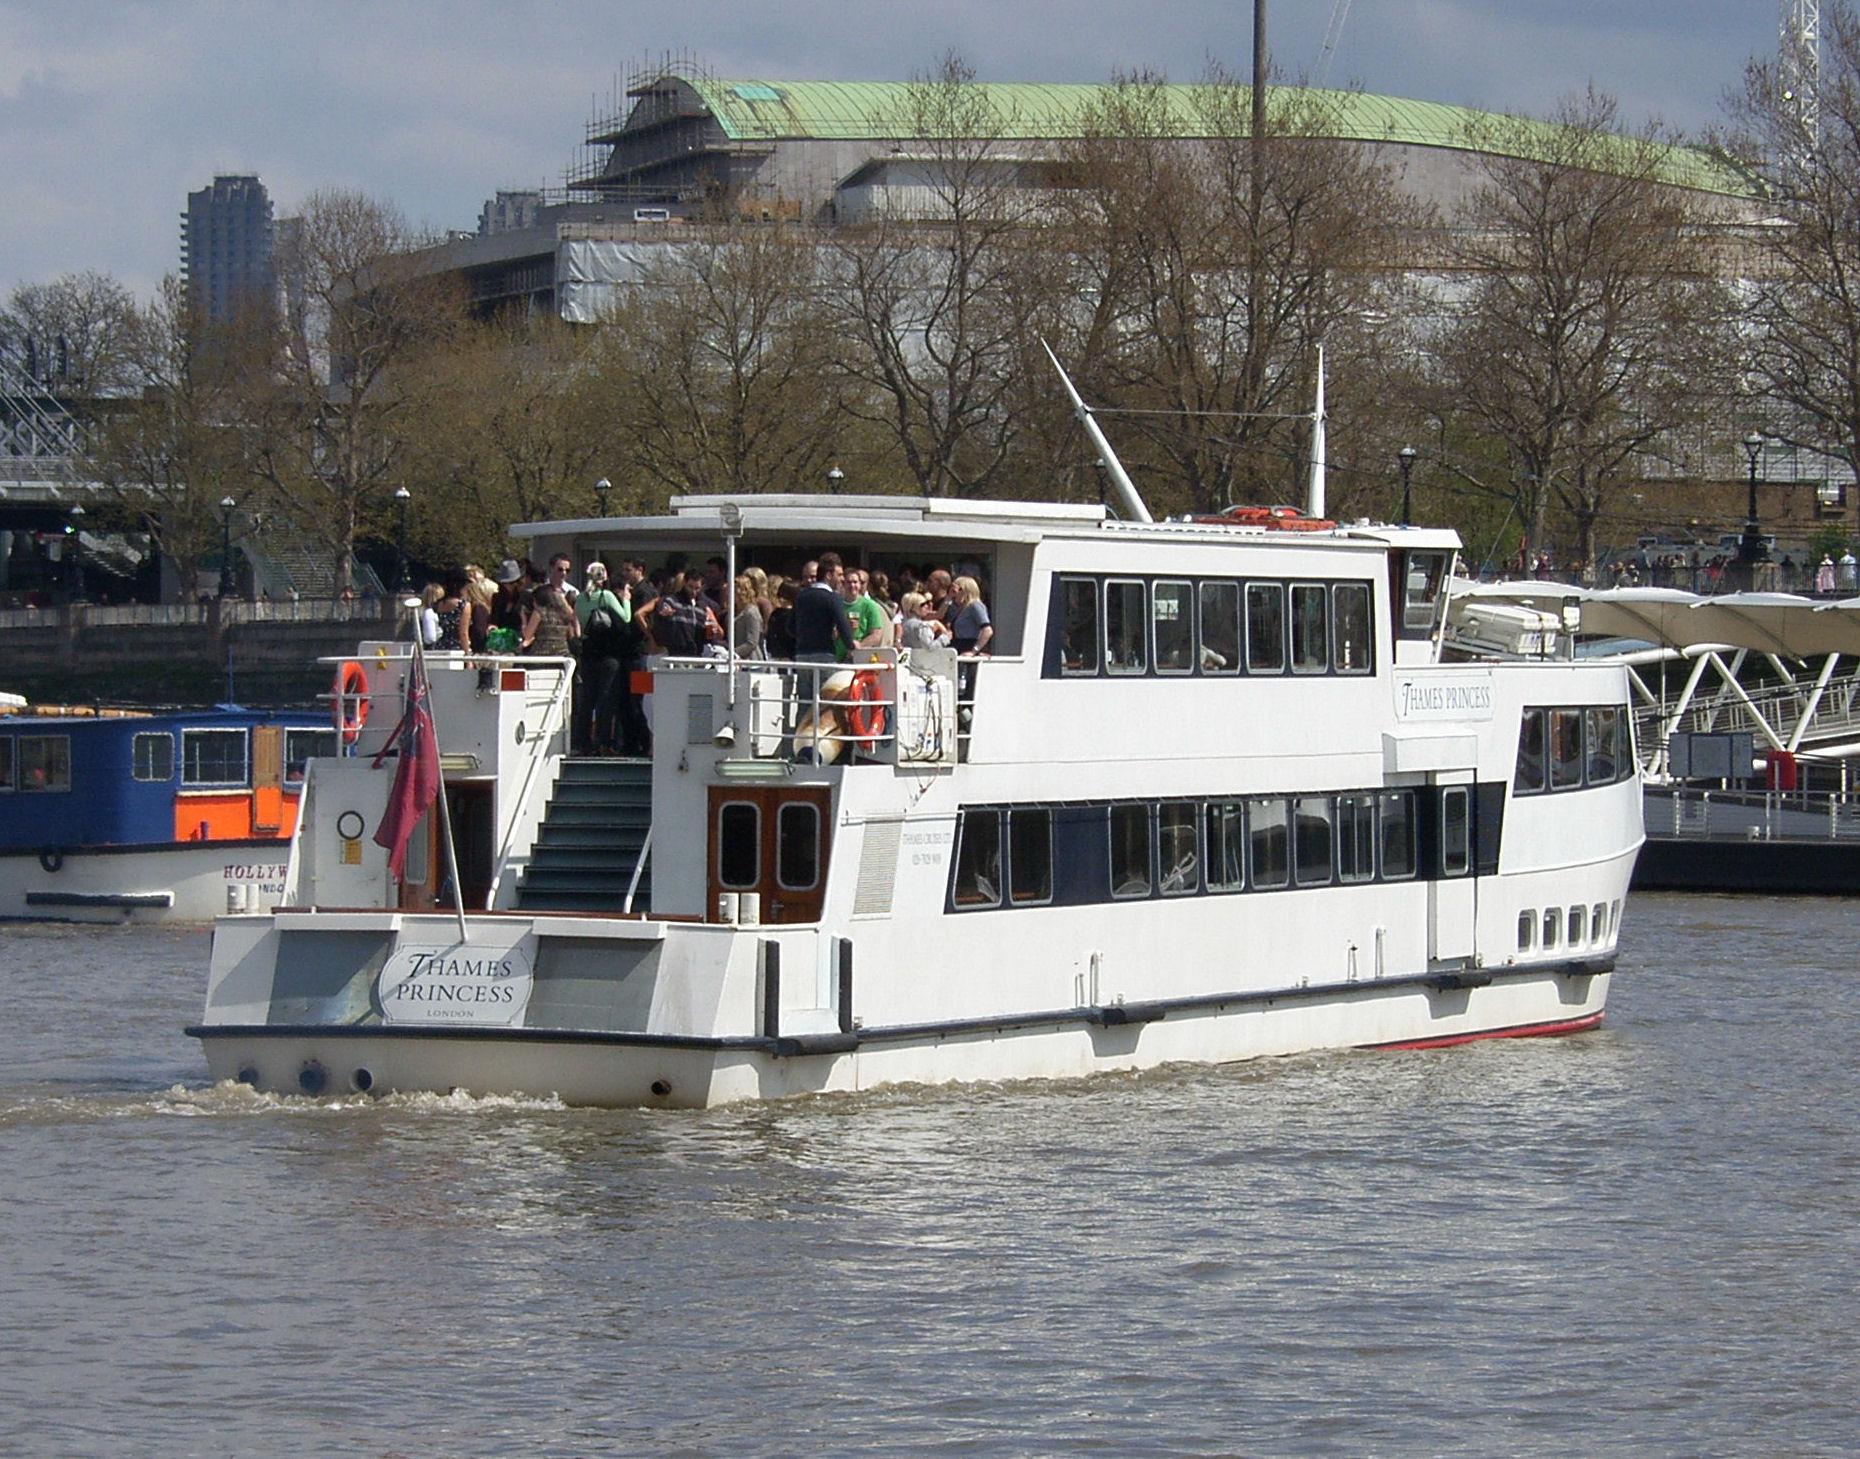 thames princess g